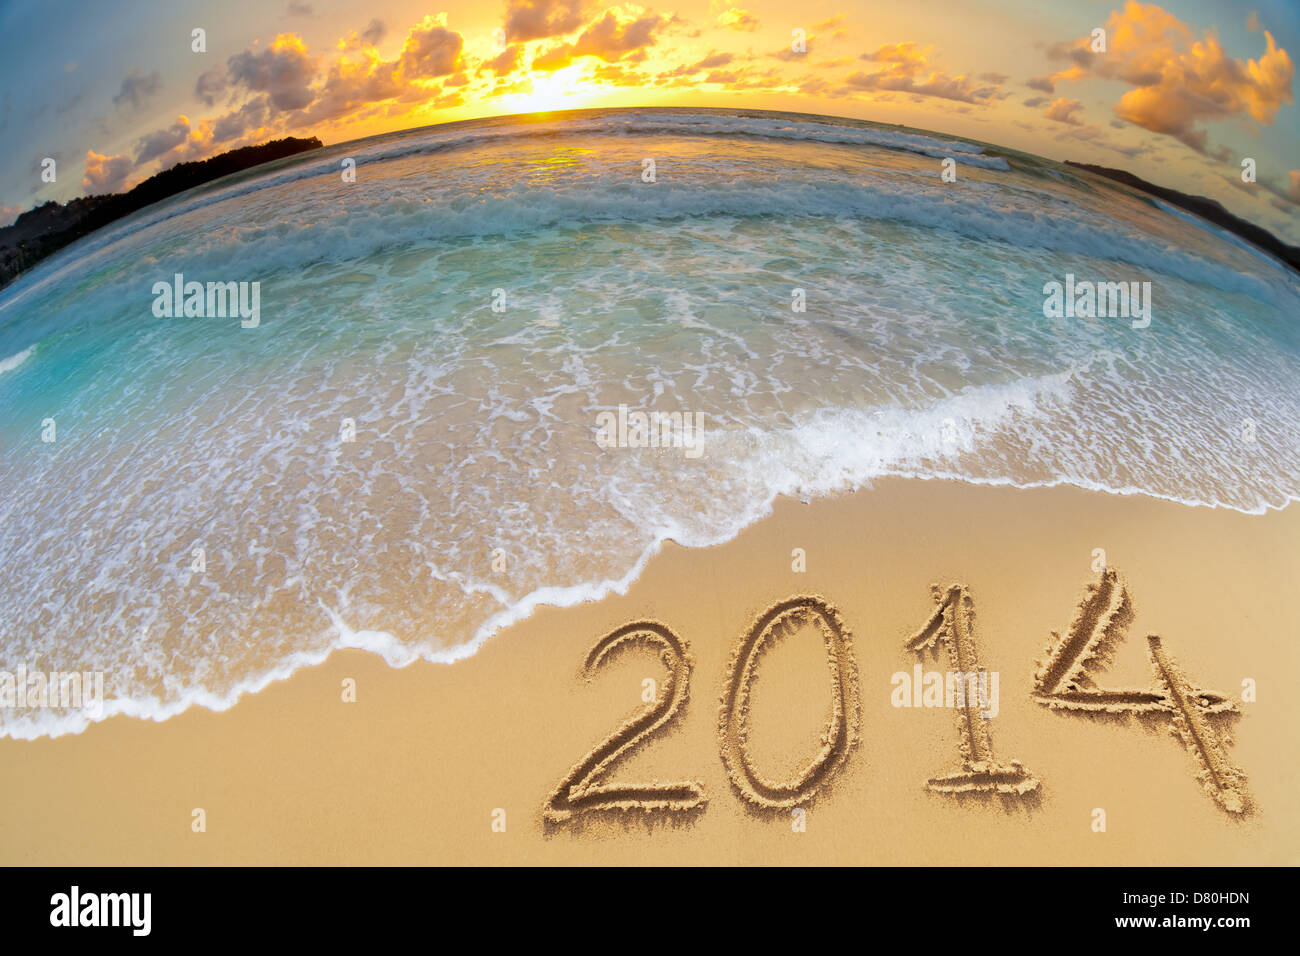 new year 2014 digits on ocean beach sand - Stock Image